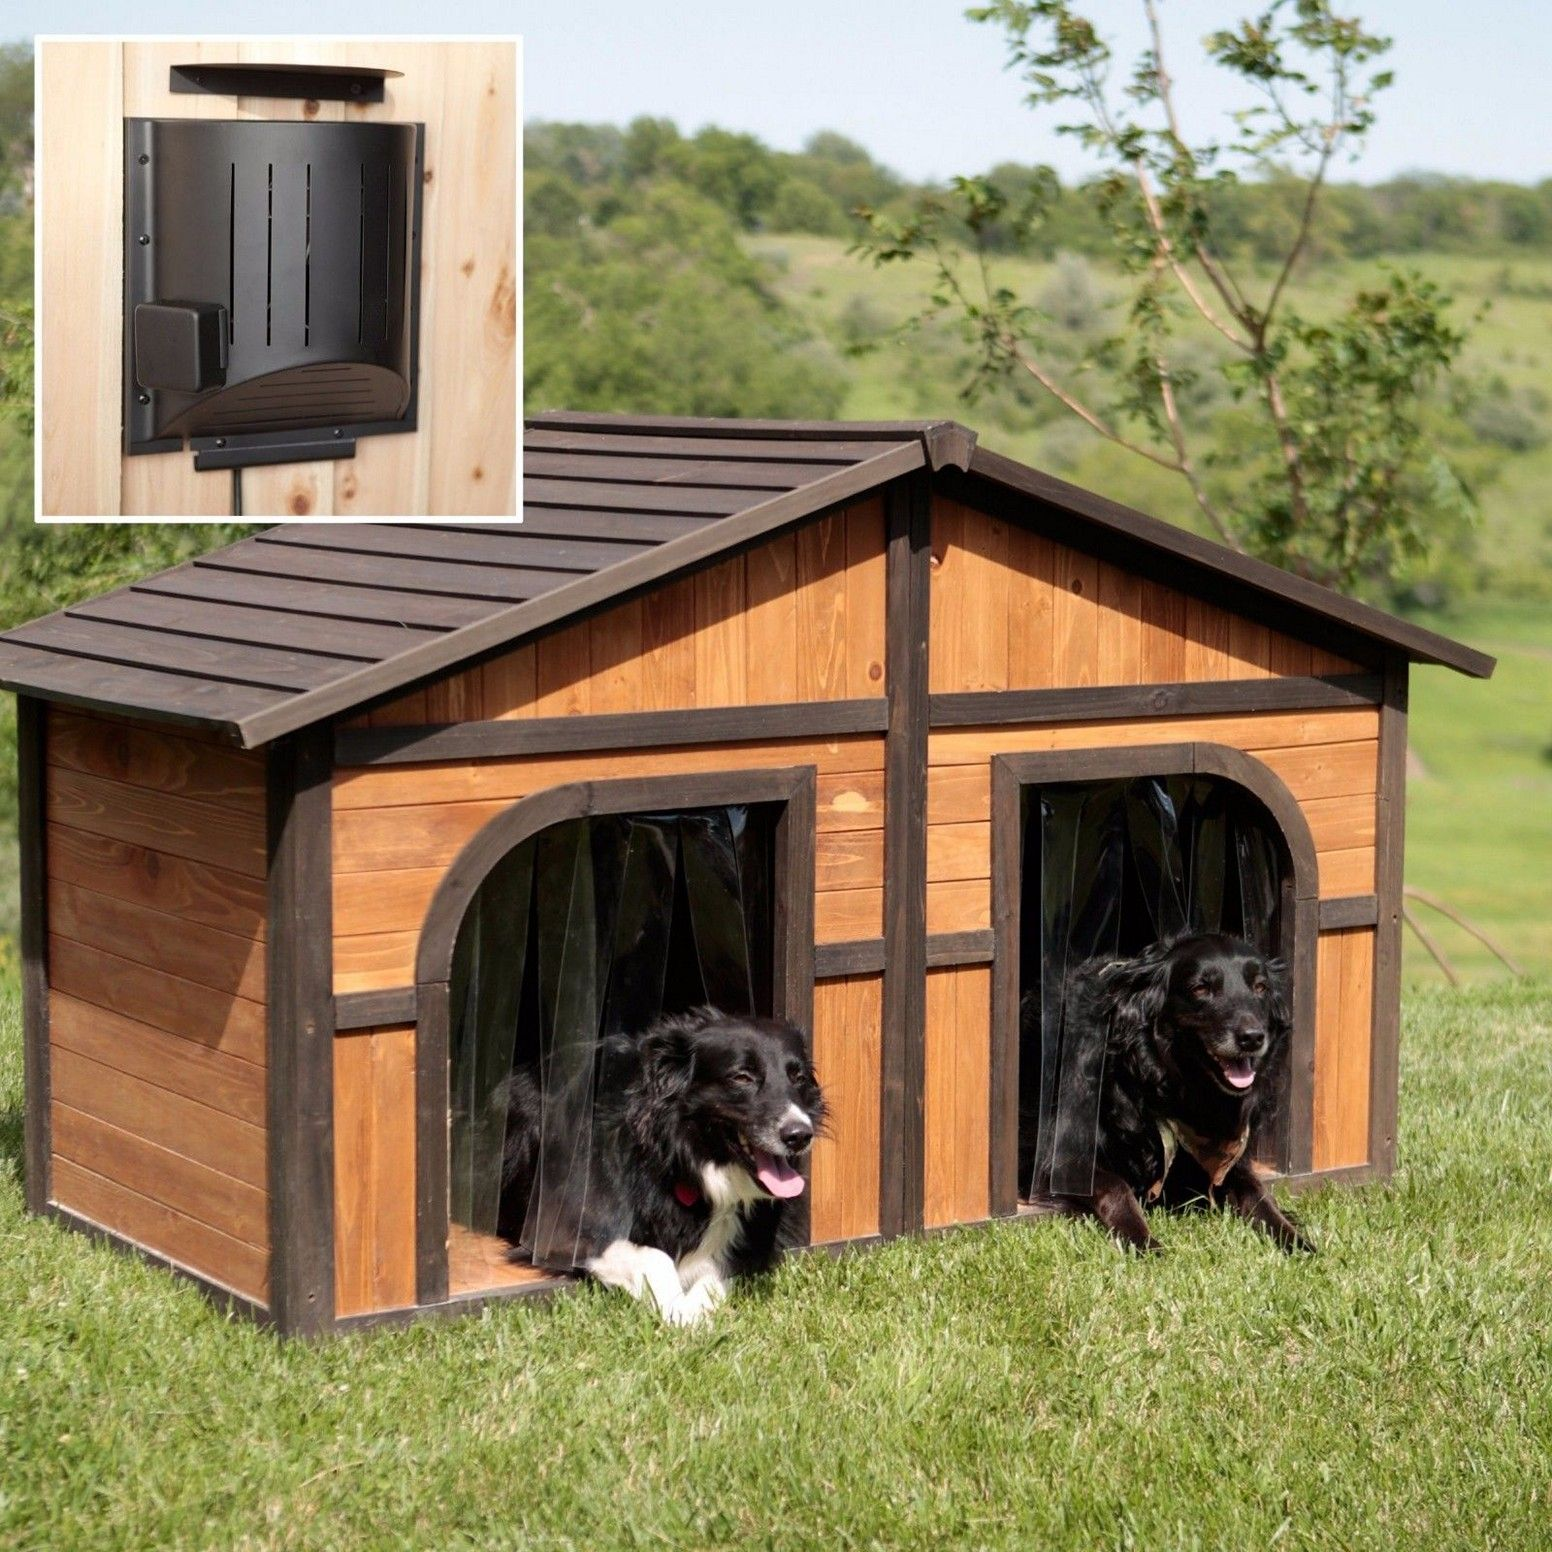 Awesome And Cool Dog Houses Design Ideas For Your Pet Double Dog